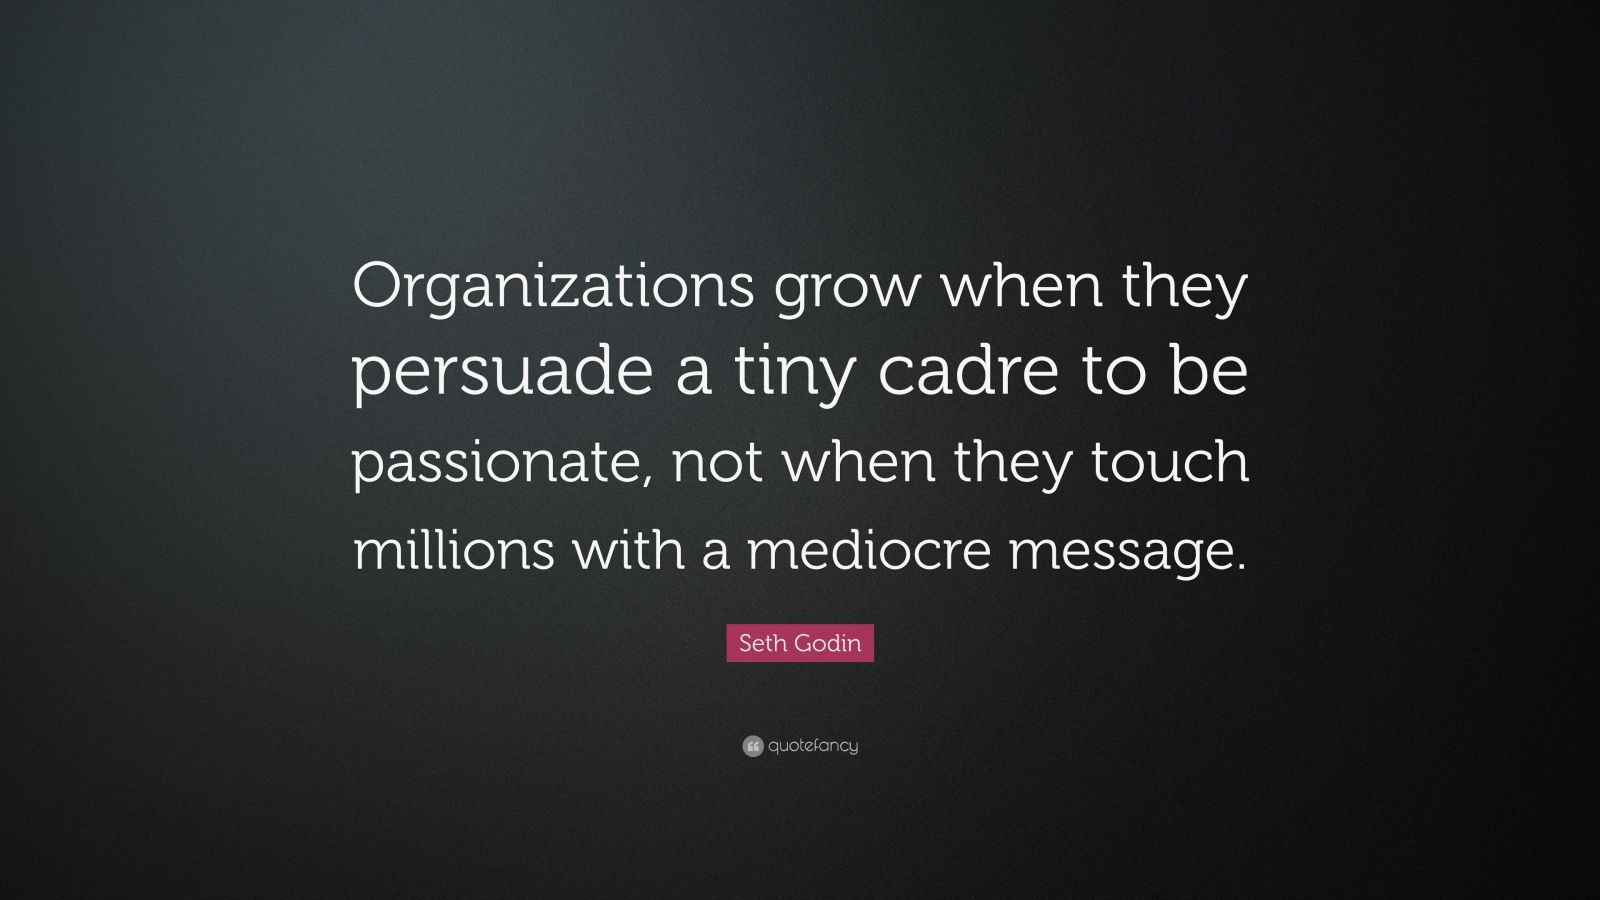 """Seth Godin Quote: """"Organizations grow when they persuade a tiny cadre to be passionate, not when they touch millions with a mediocre message."""""""